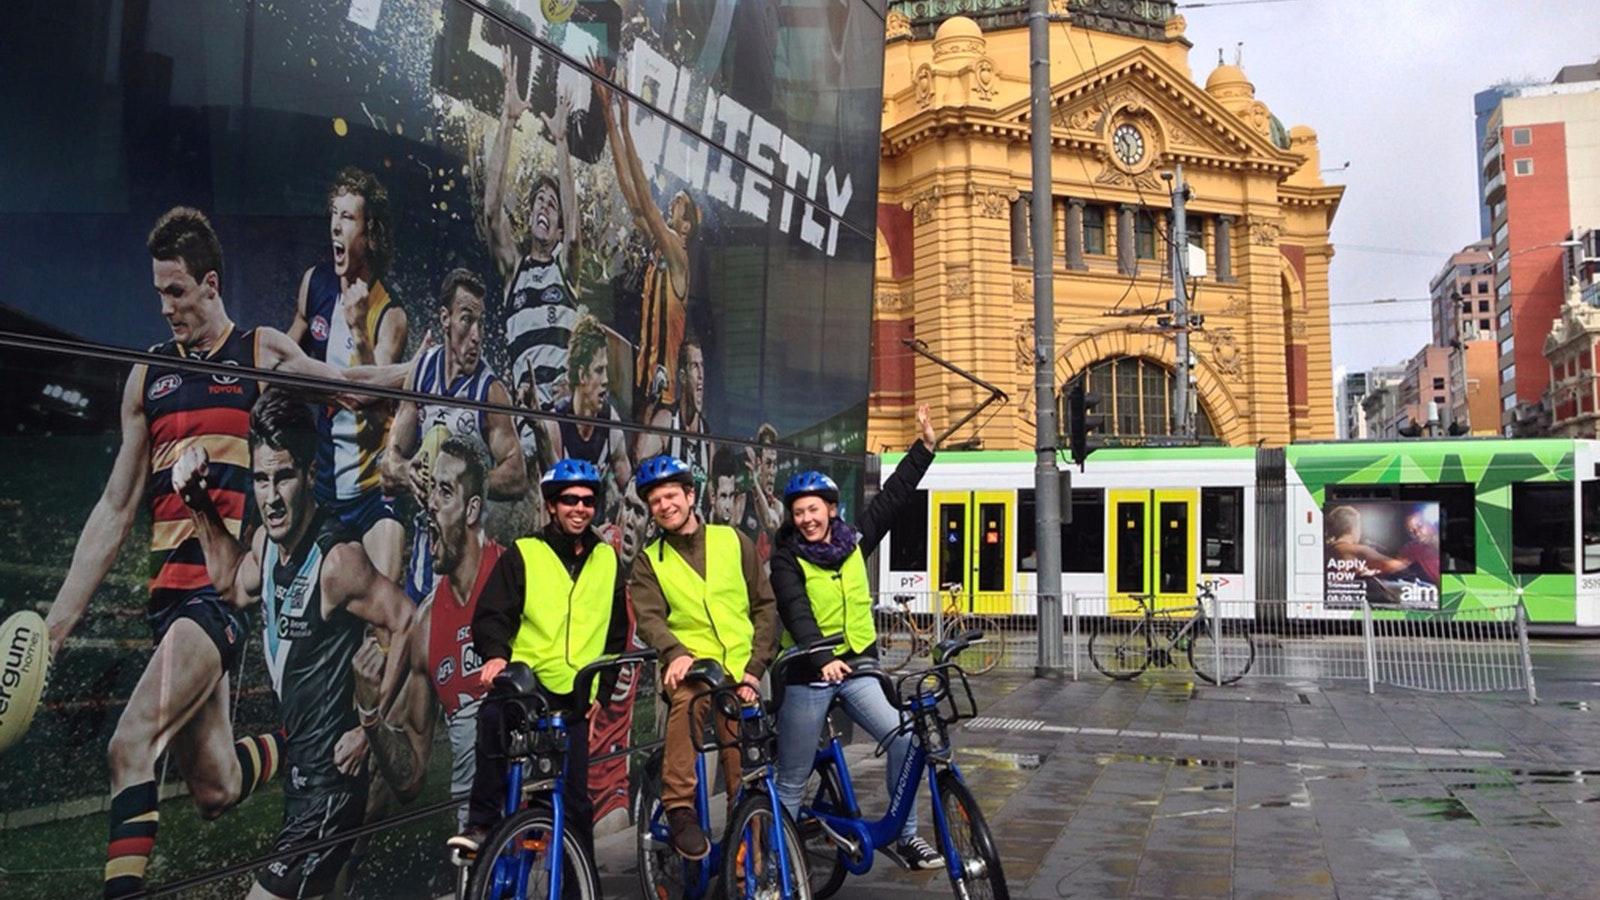 View of riders, tram and Flinders Street Station from Federation Square.